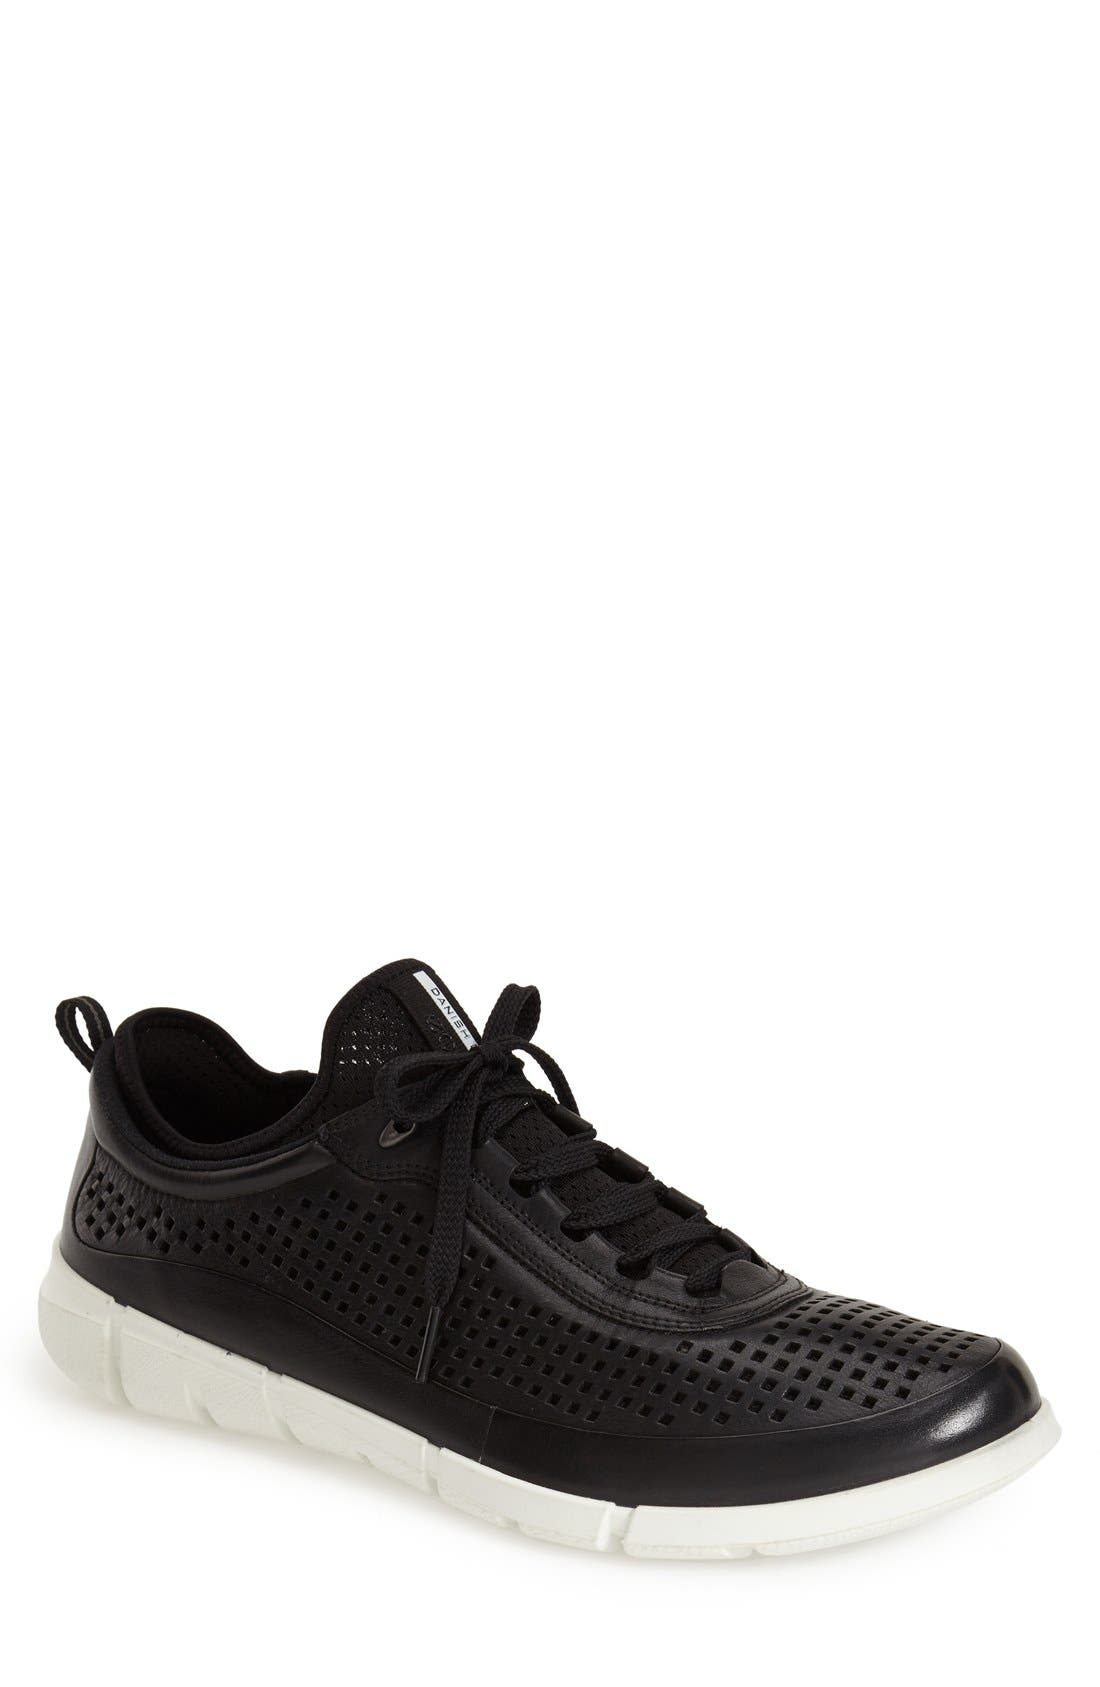 'Intrinsic' Sneaker,                         Main,                         color, Black Leather